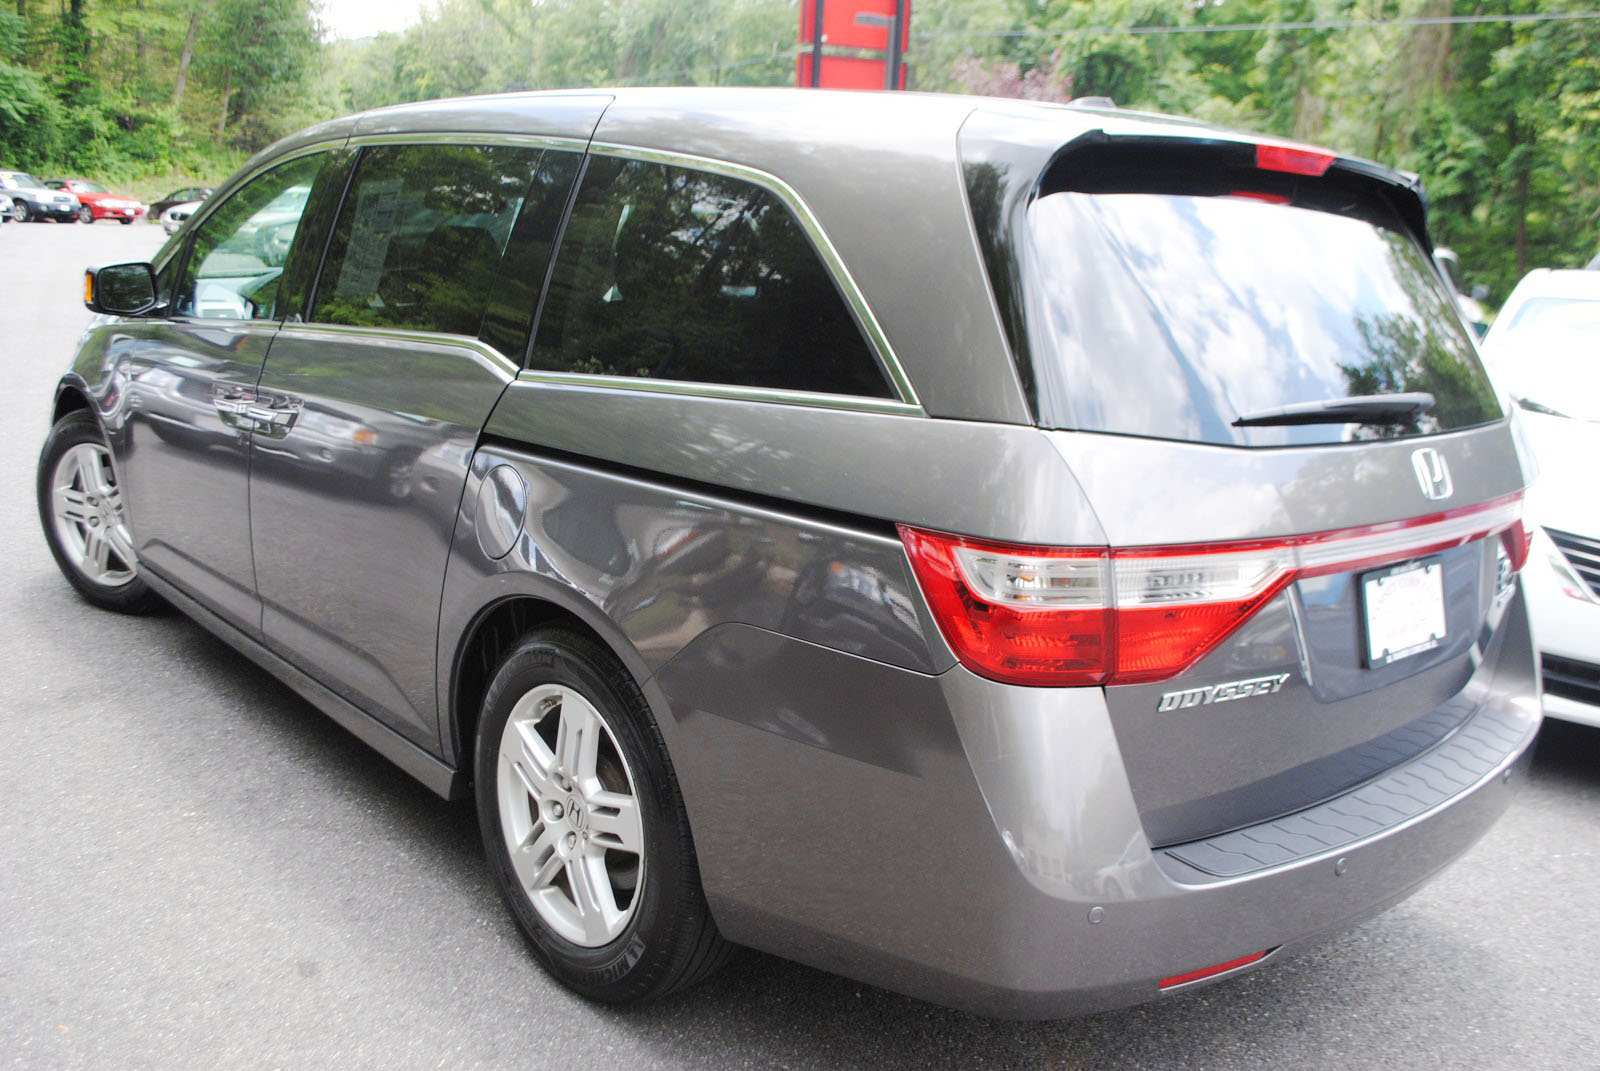 Used 2011 honda odyssey for sale west milford nj for Honda odyssey for sale nj